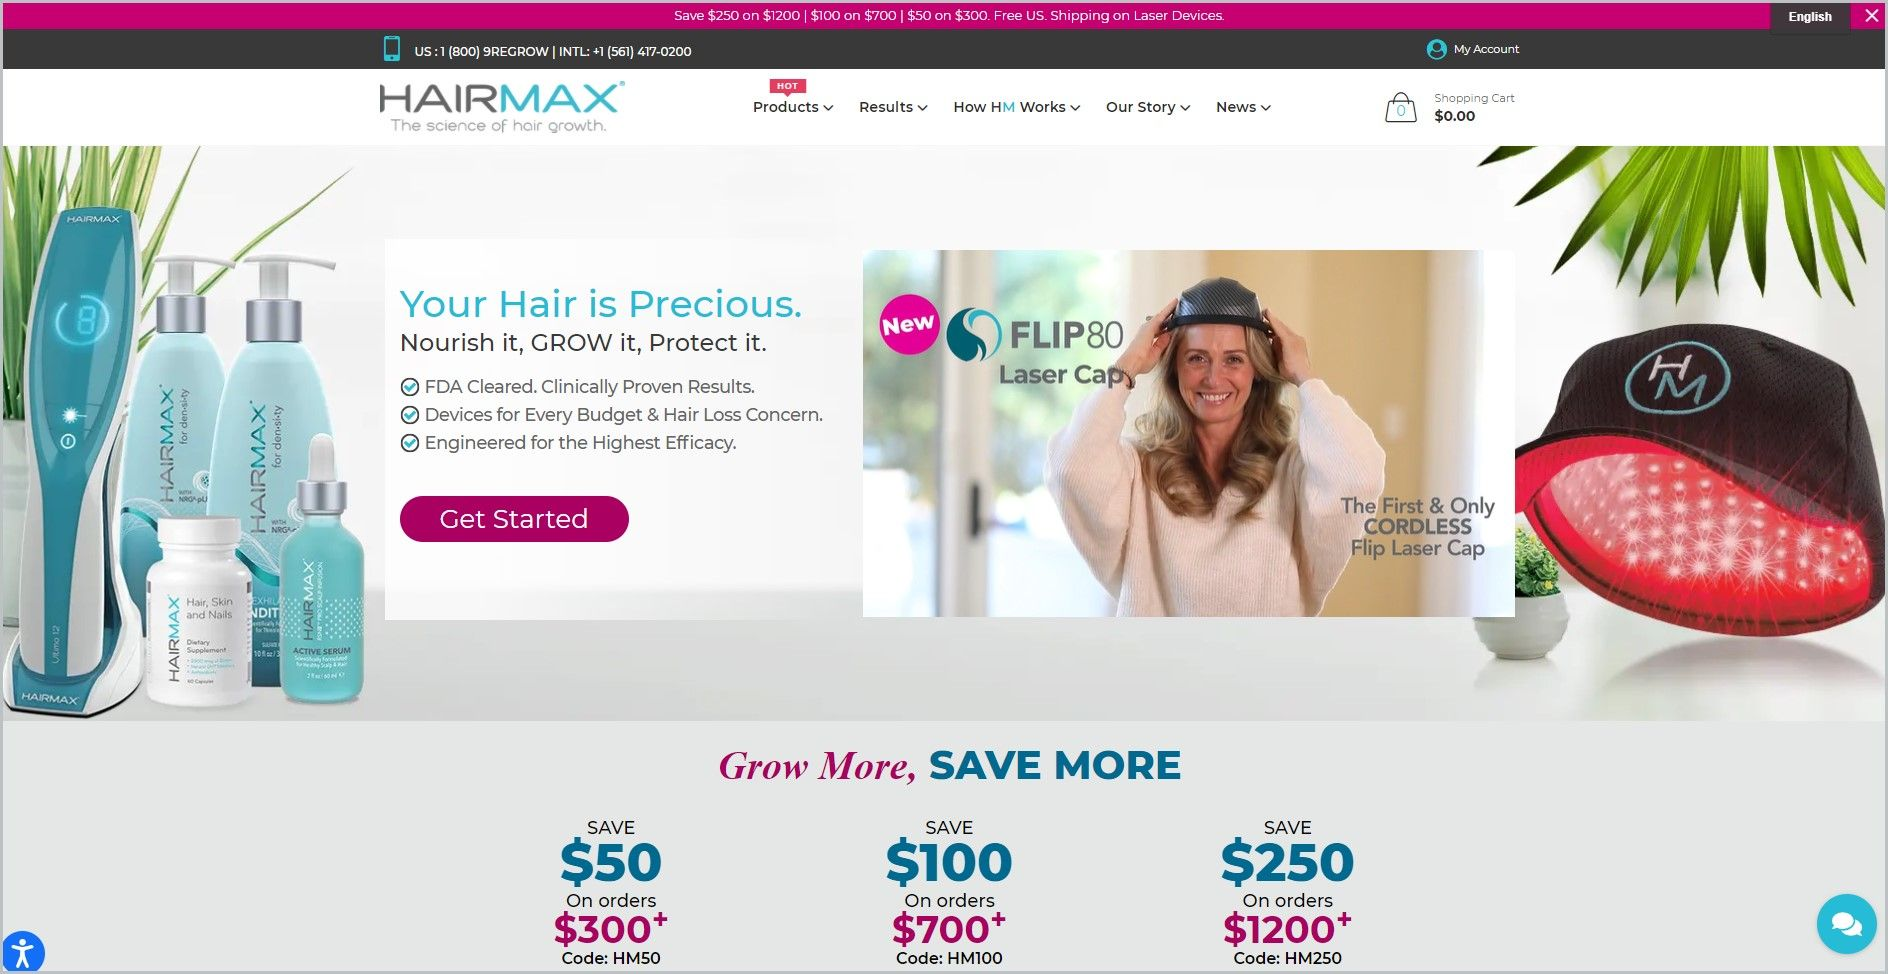 screenshot of HairMax homepage, with a white header bearing the website's name and showcasing an image of the company's laser device and some of its hair care products